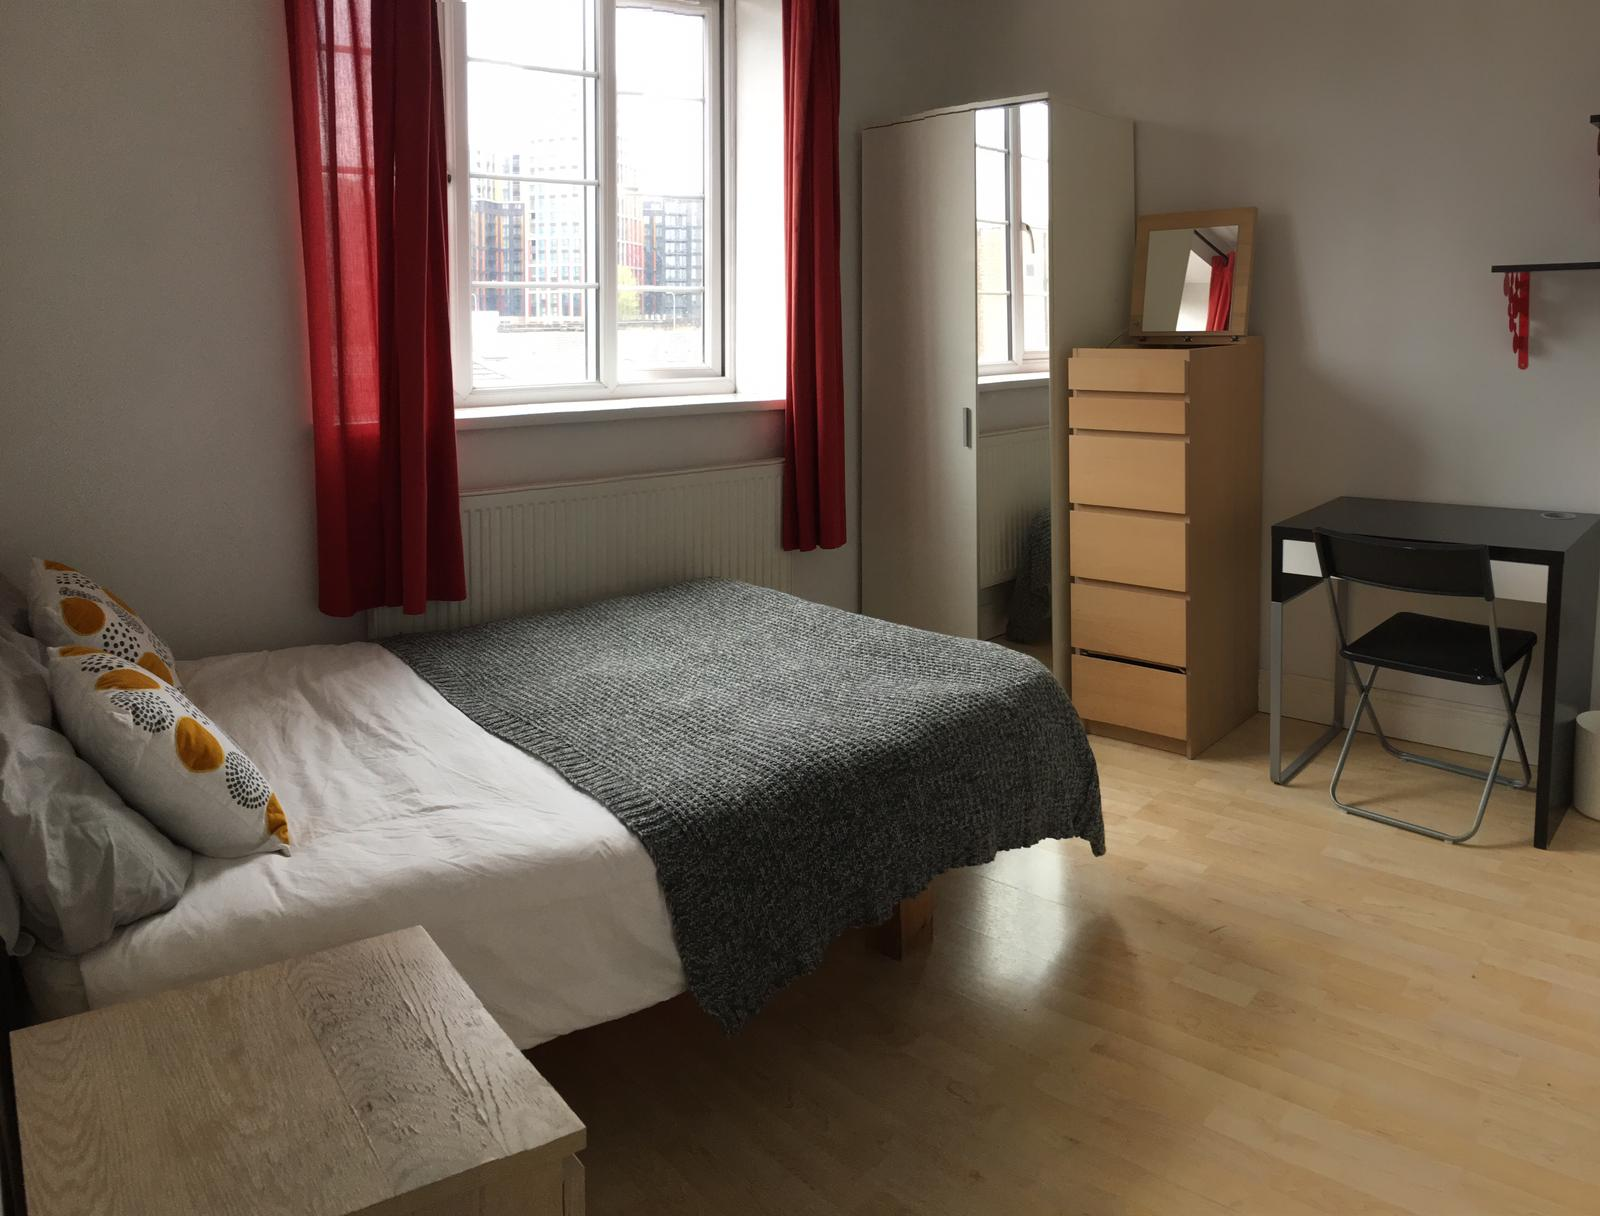 Photo 1, Single room - WANDS D in London